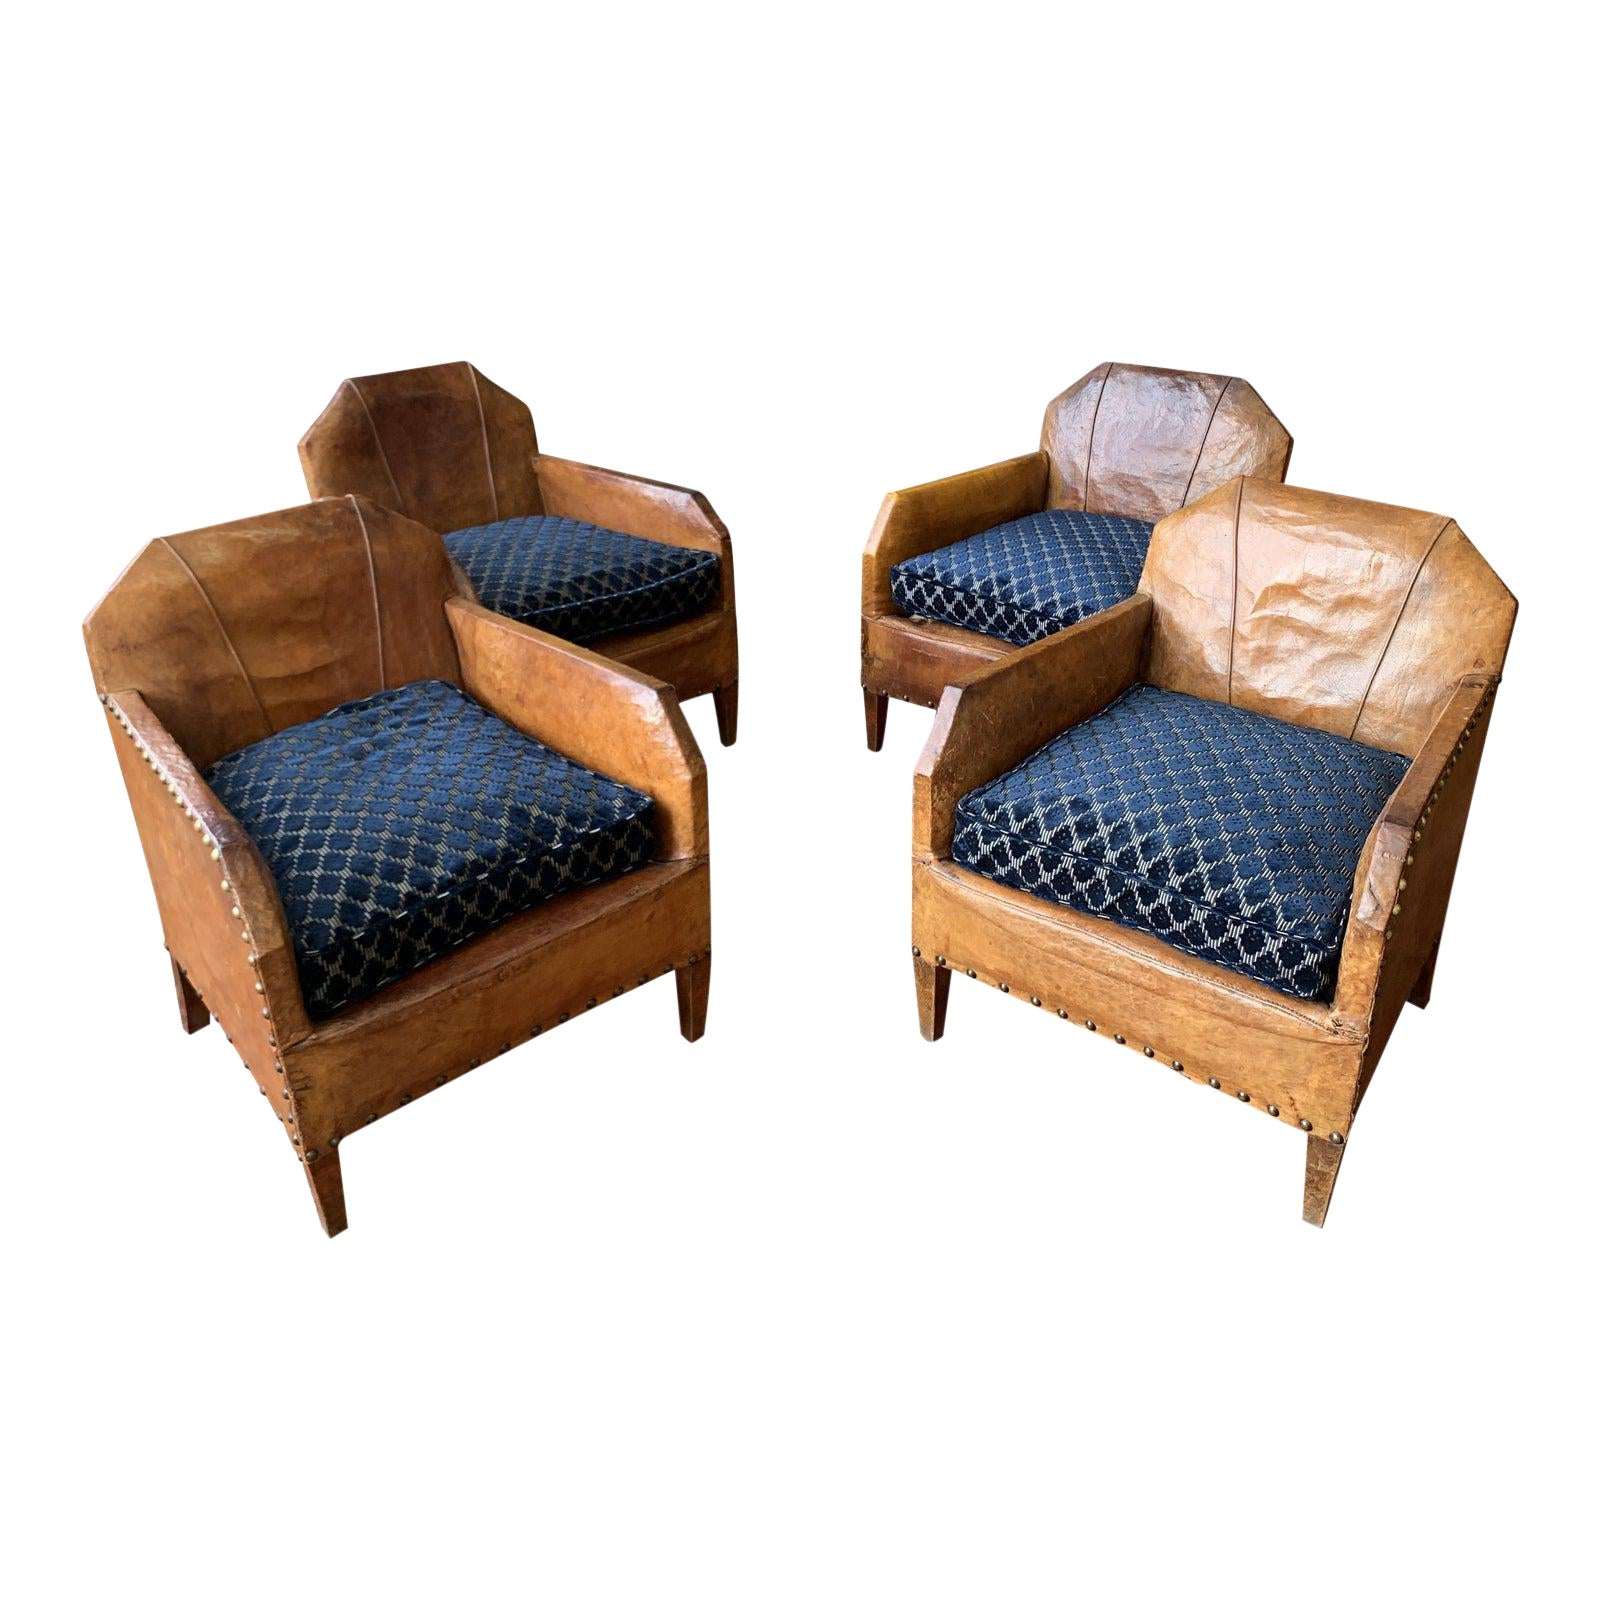 1930s Vintage Art Deco French Leather Club Chairs - Set of 4 - French Antiques www.Decoparis.com